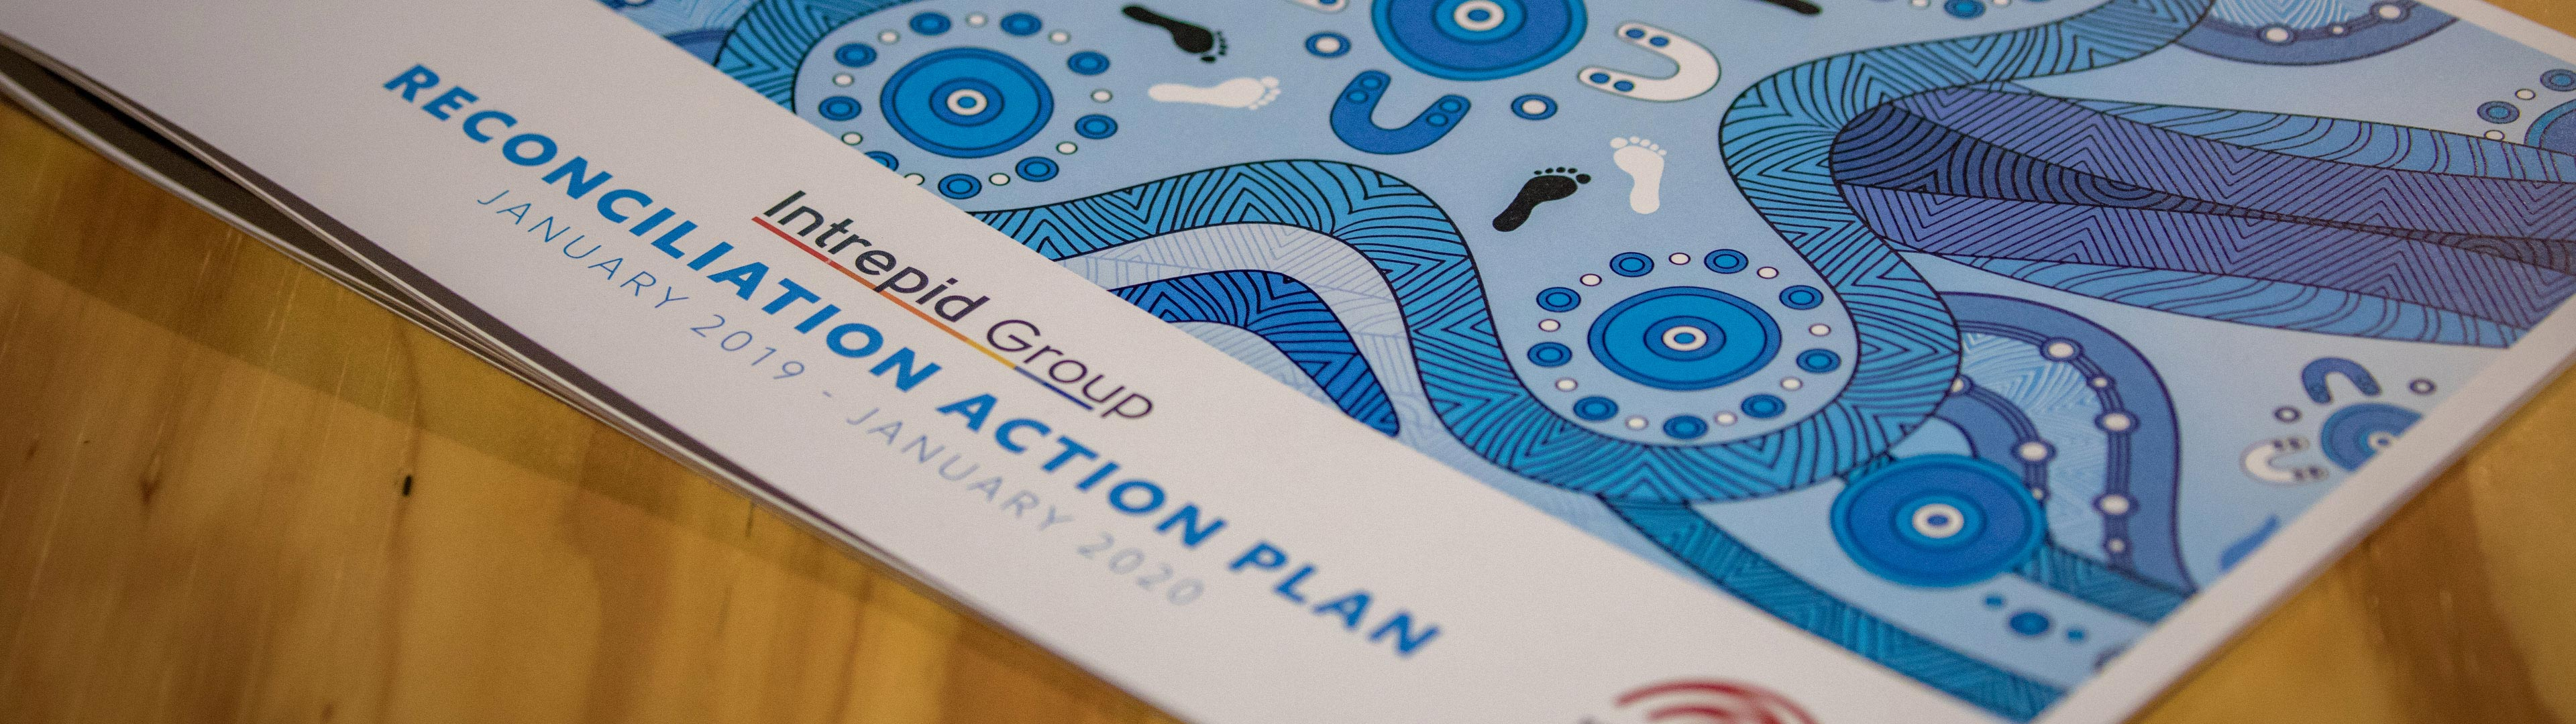 Why we're committing to a Reconciliation Action Plan